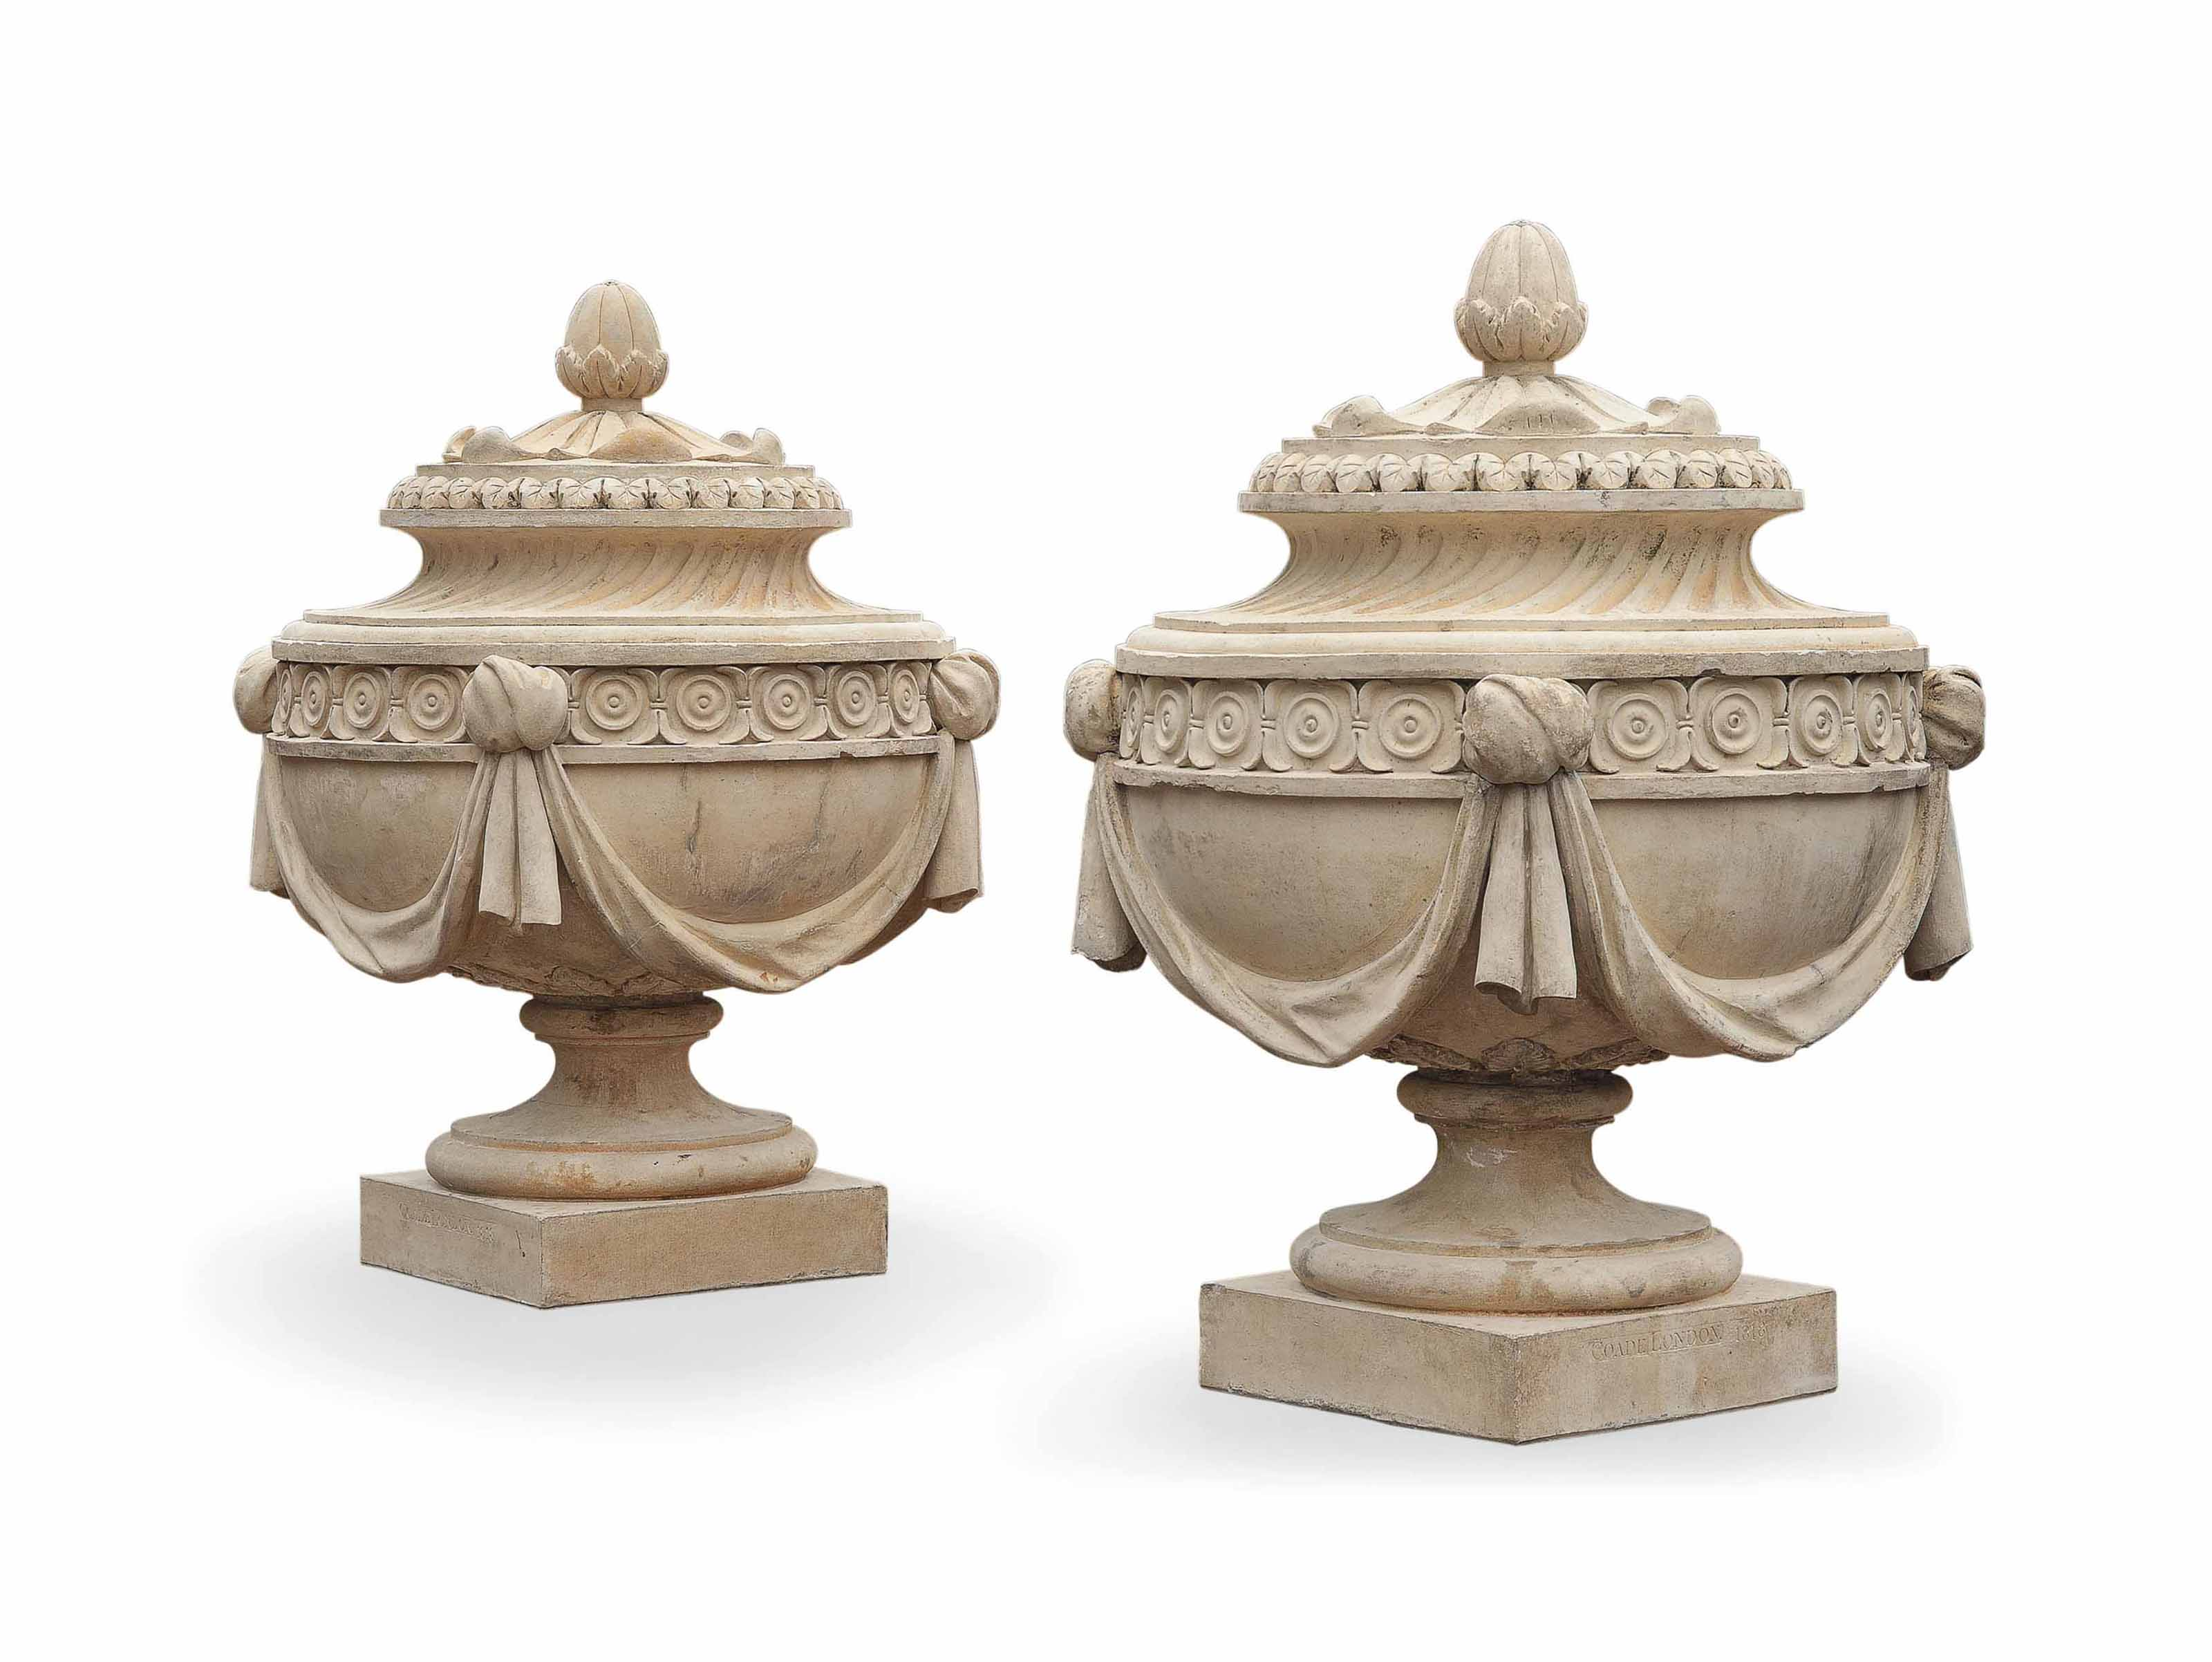 A PAIR OF GEORGE III ARTIFICIAL 'COADE' STONE FINIALS